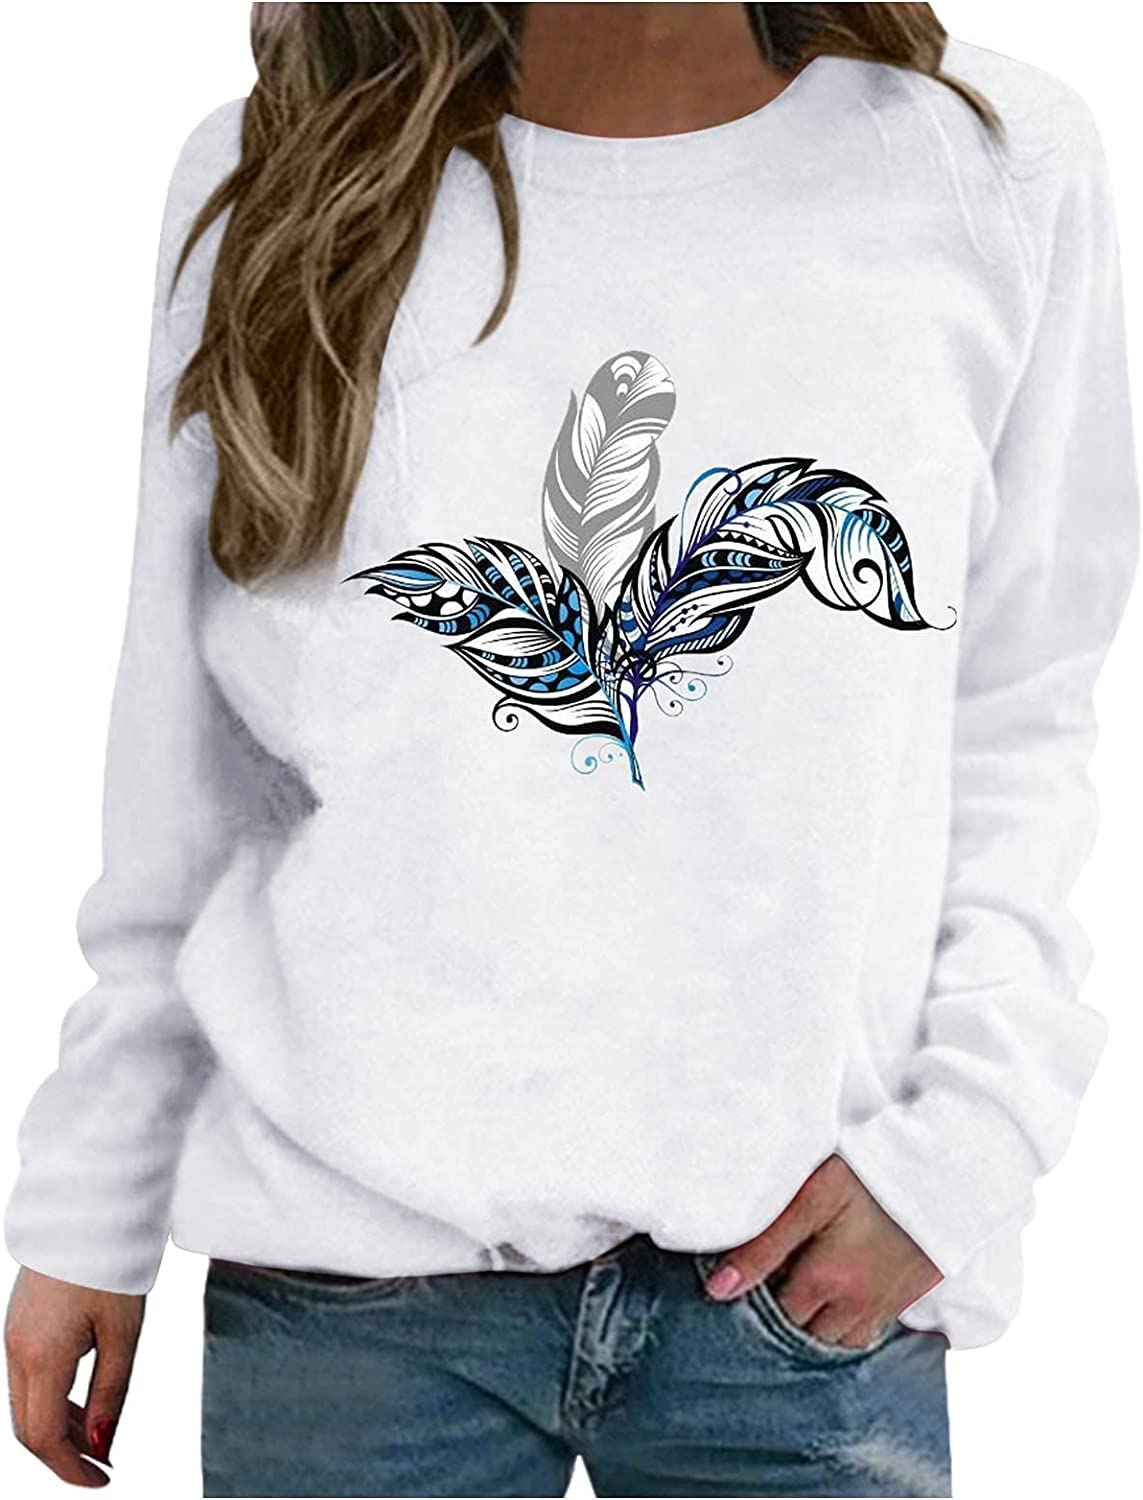 Today's only Pullover Tops Super-cheap for Women,Floral Print Fa Neck Round Sweatshirts